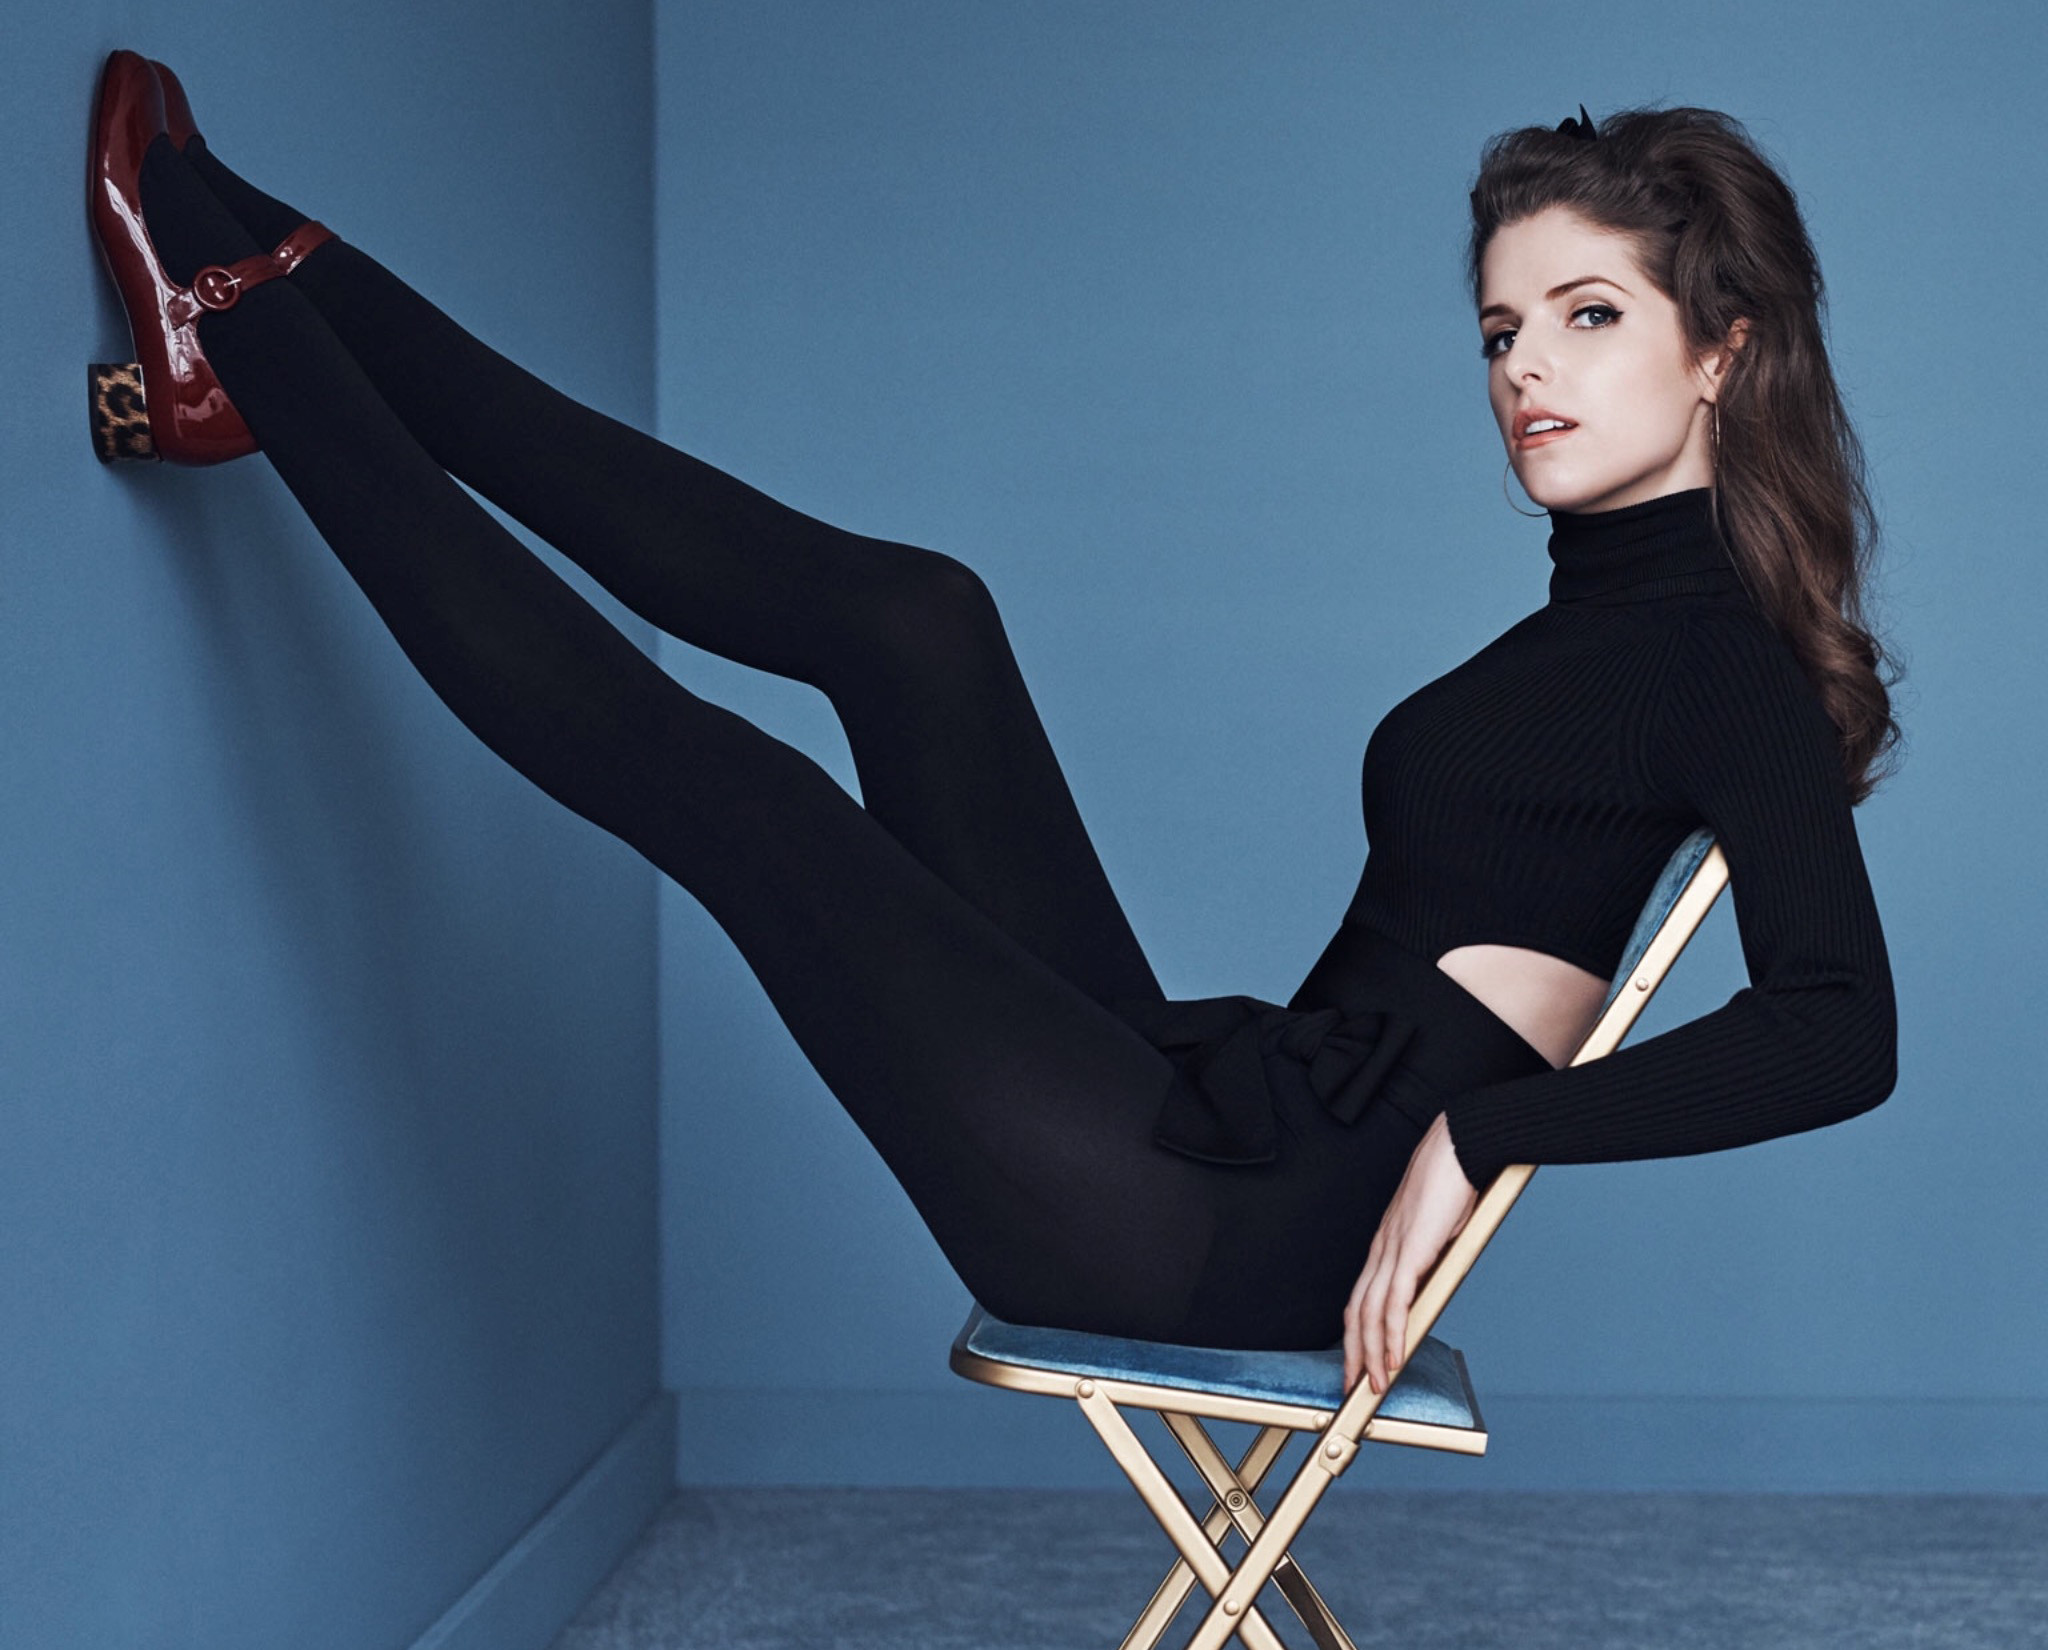 anna-kendrick-the-edit-fashion-shoot-hot-legs-7